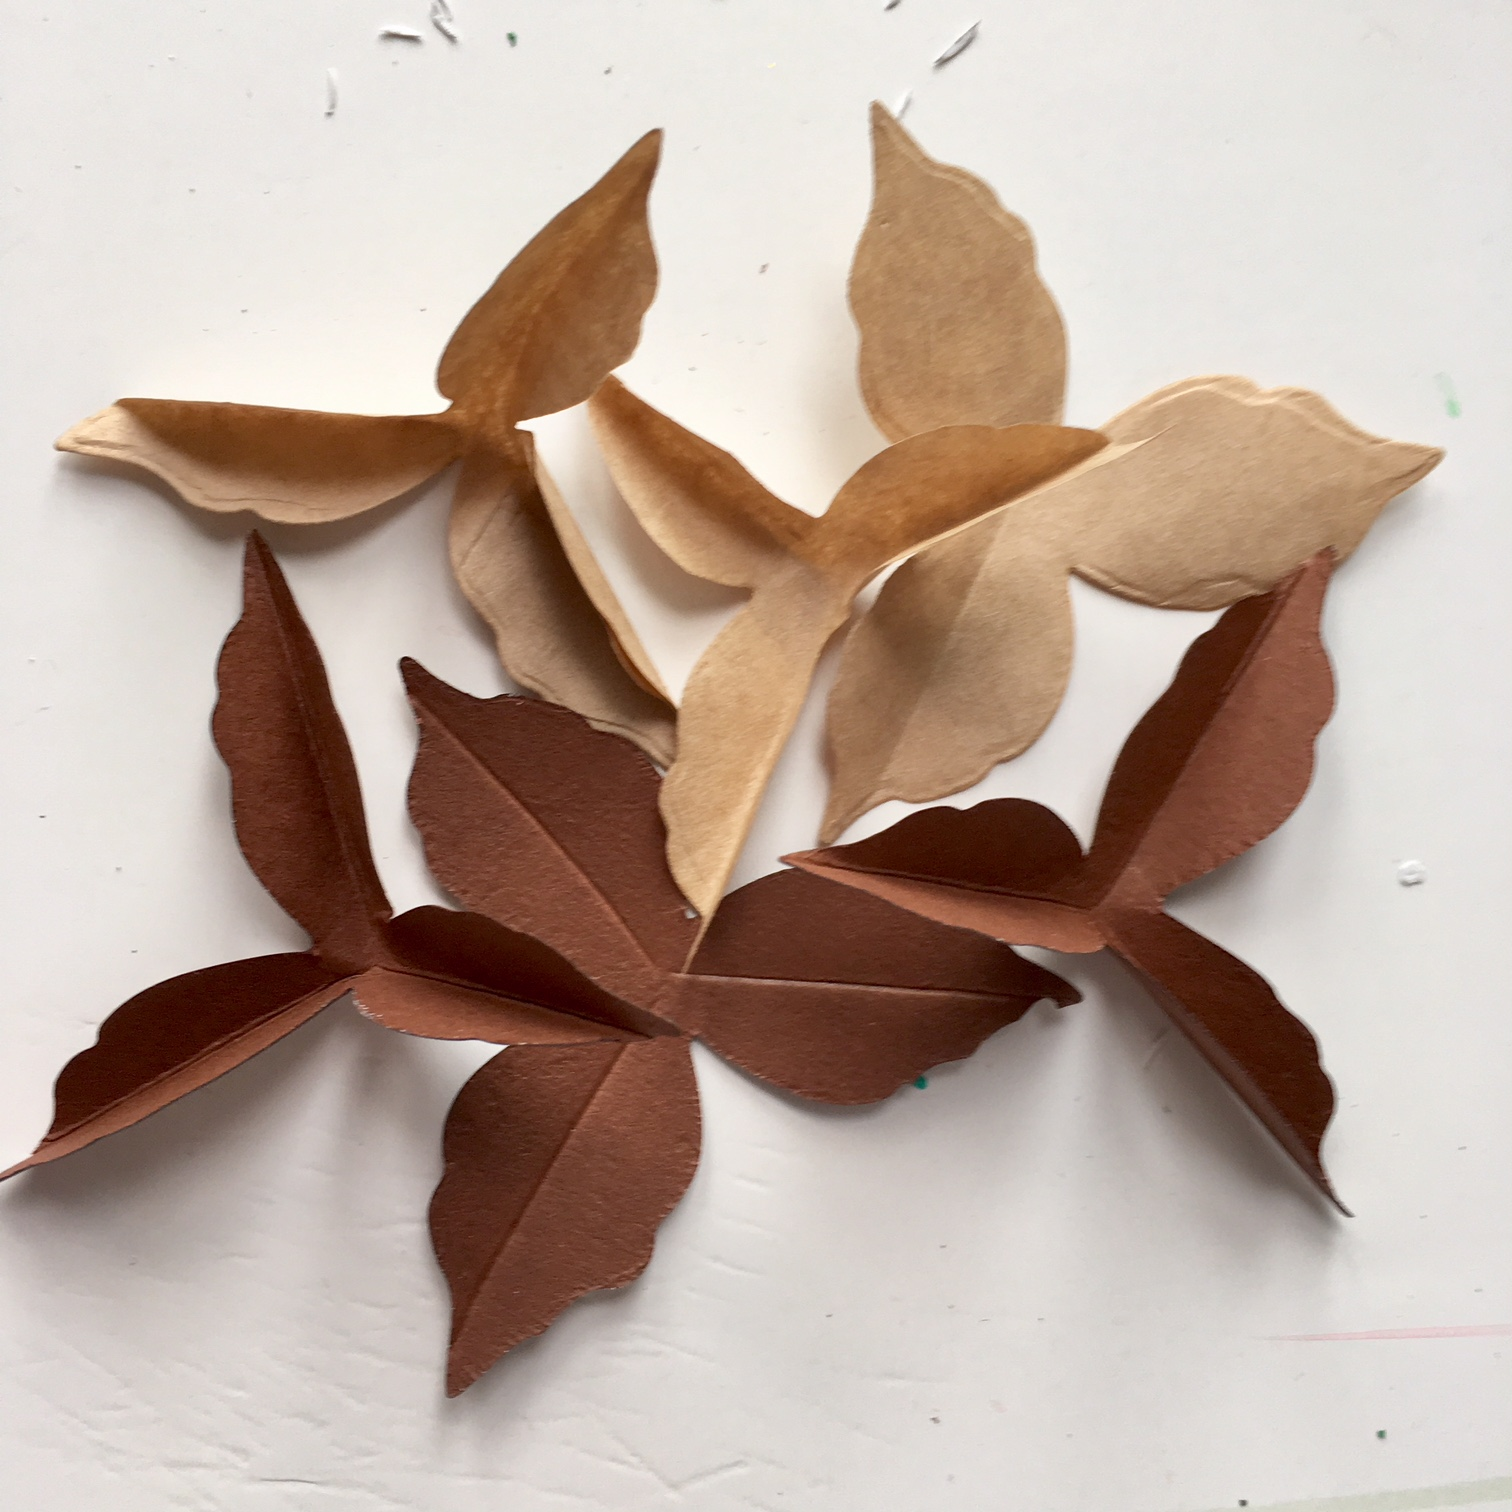 frugal craft Christmas wreath- brown paper cotton leaf shapes